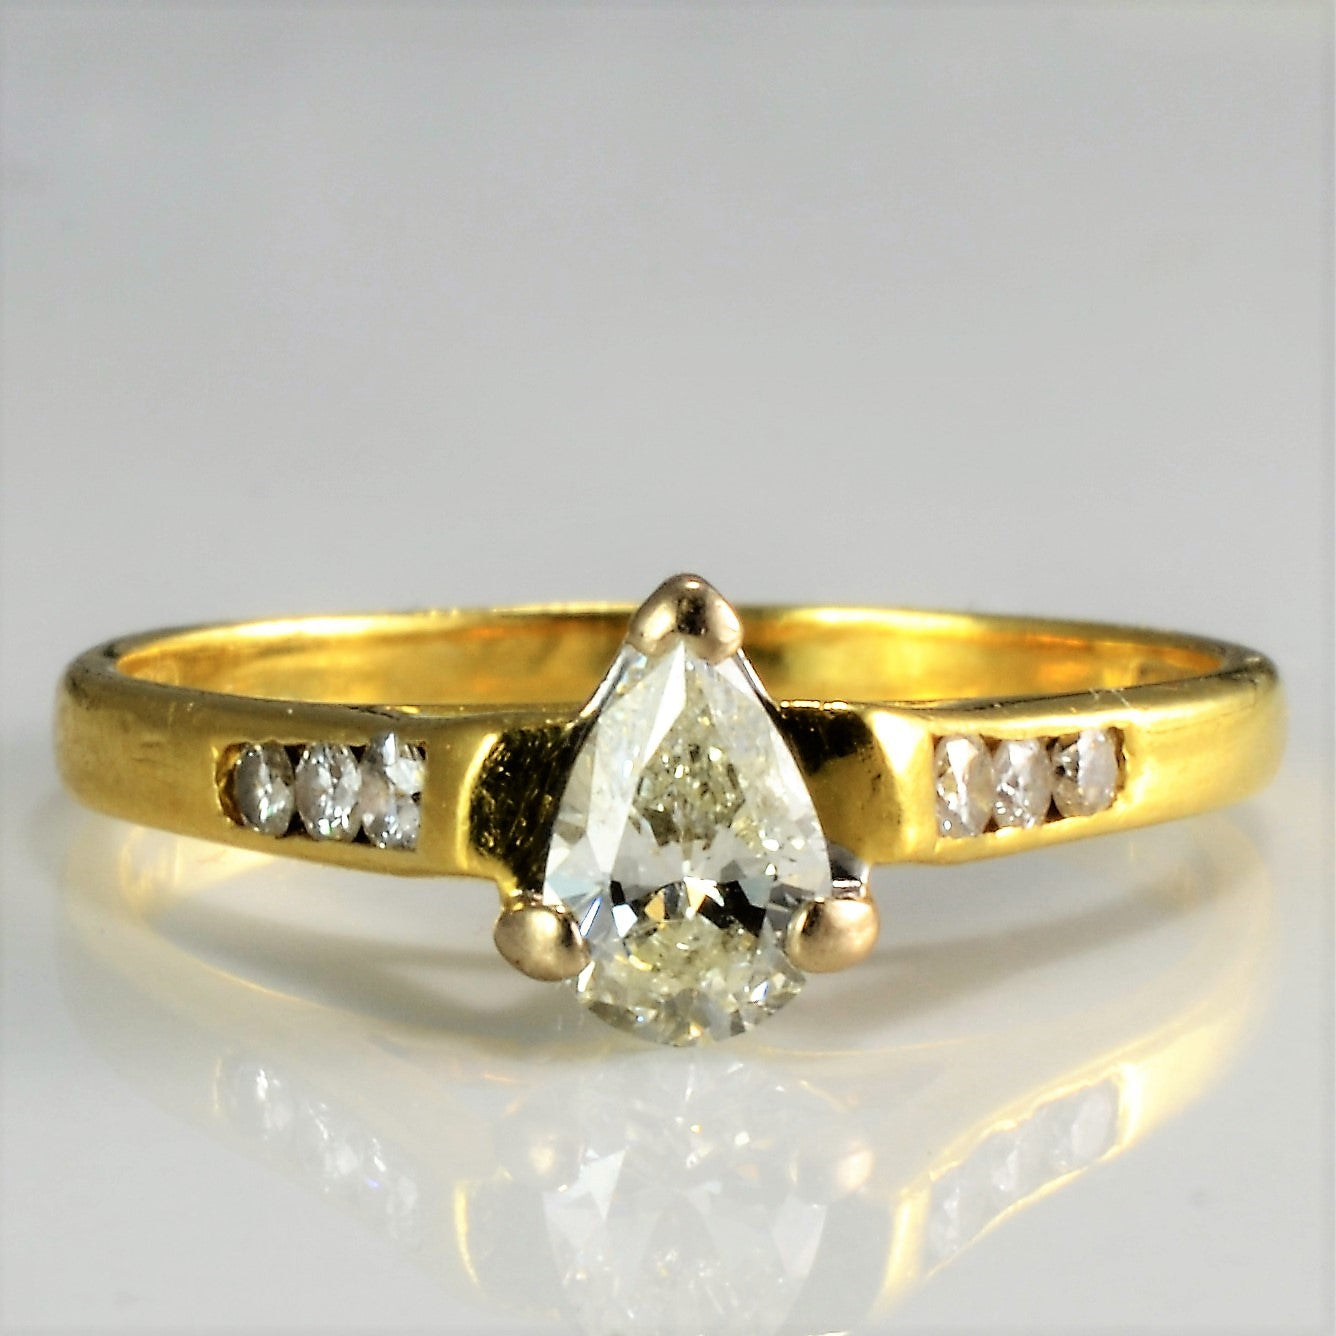 Solitaire Pear Diamond & Accents Engagement Ring | 0.50 ctw, SZ 6 |